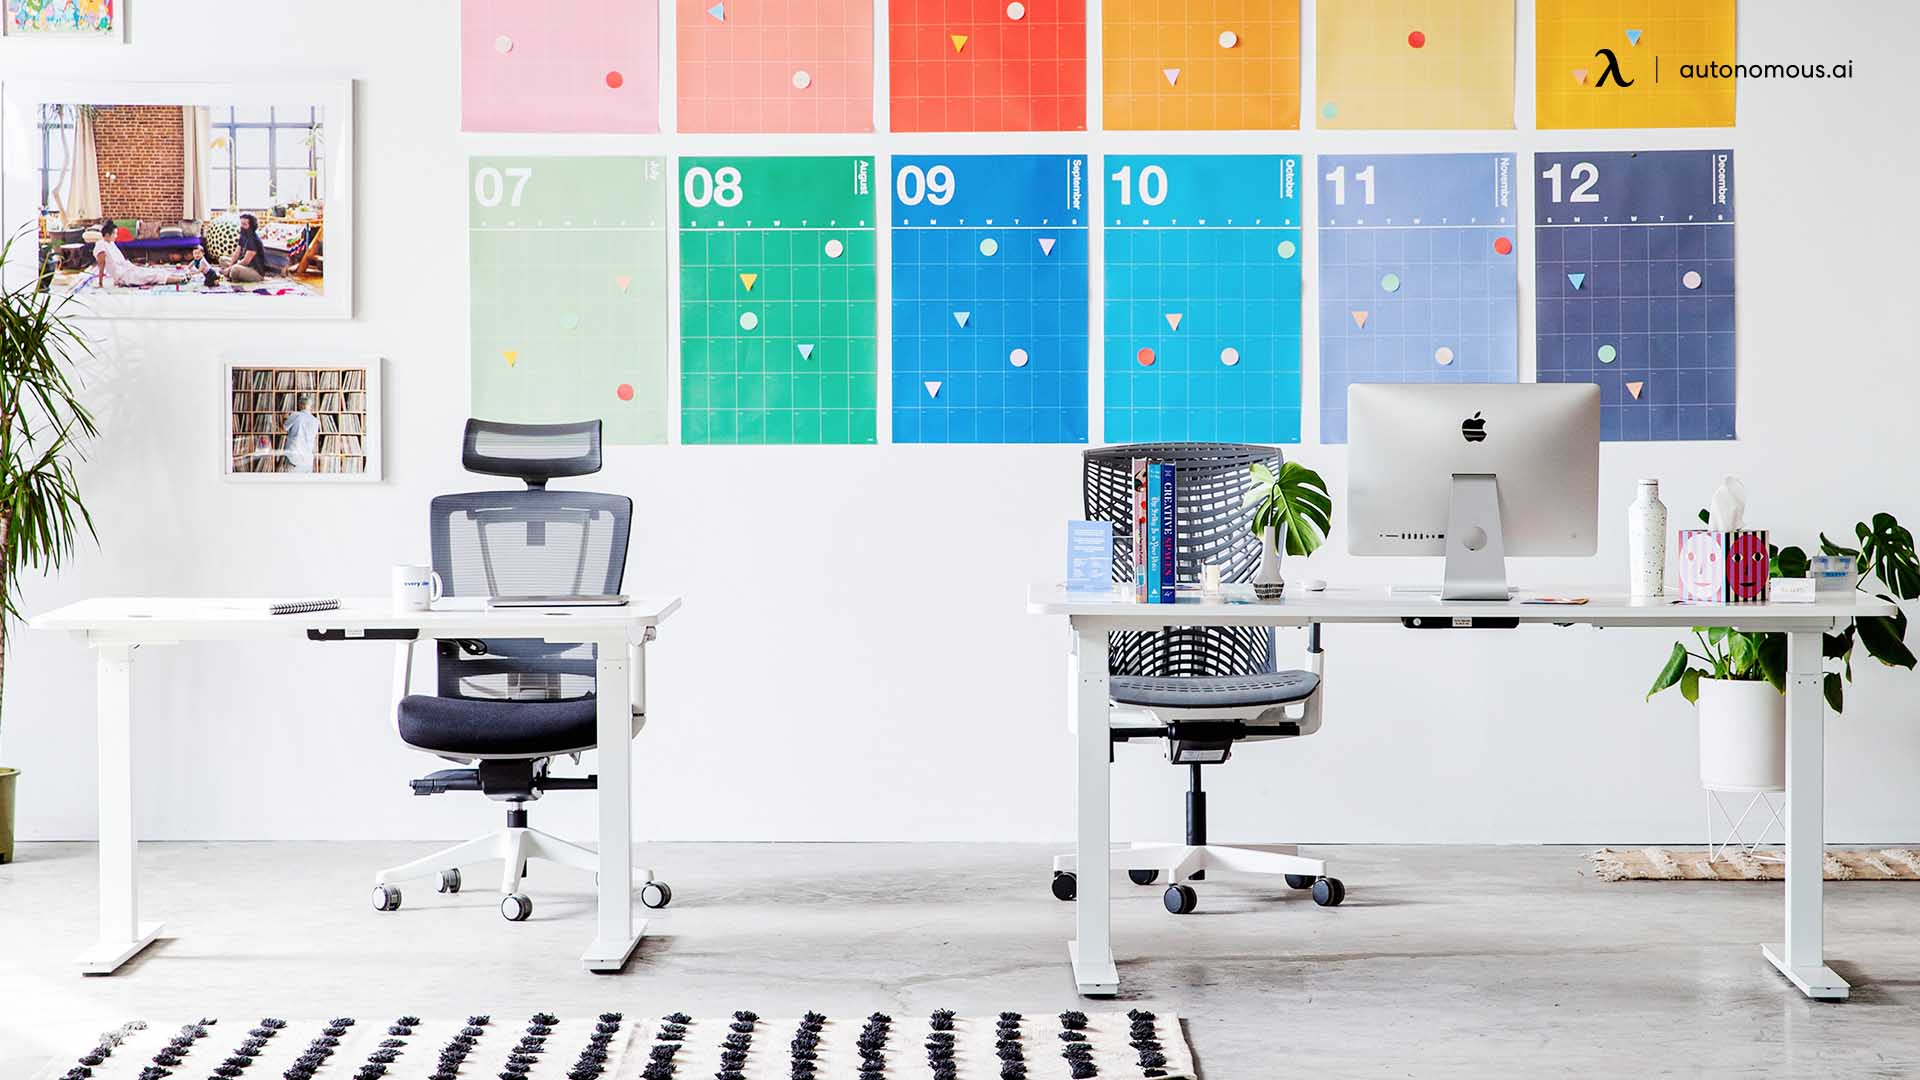 Make changes to the workspace